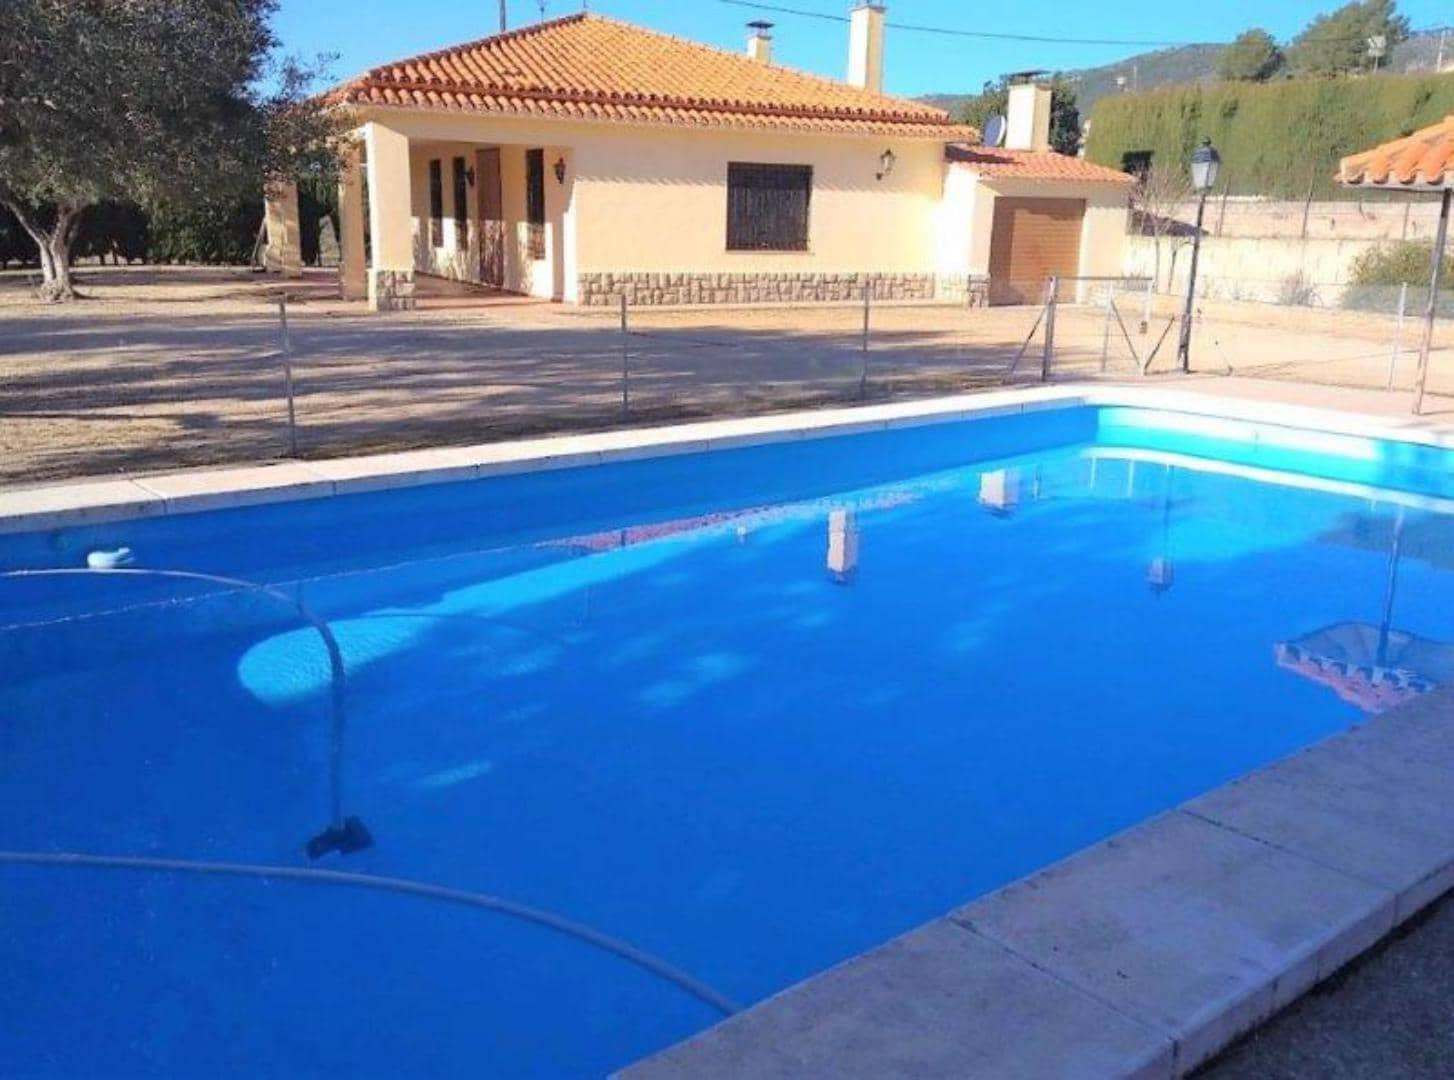 4 bedroom Villa for sale in Ontinyent with pool garage - € 170,000 (Ref: 5592084)